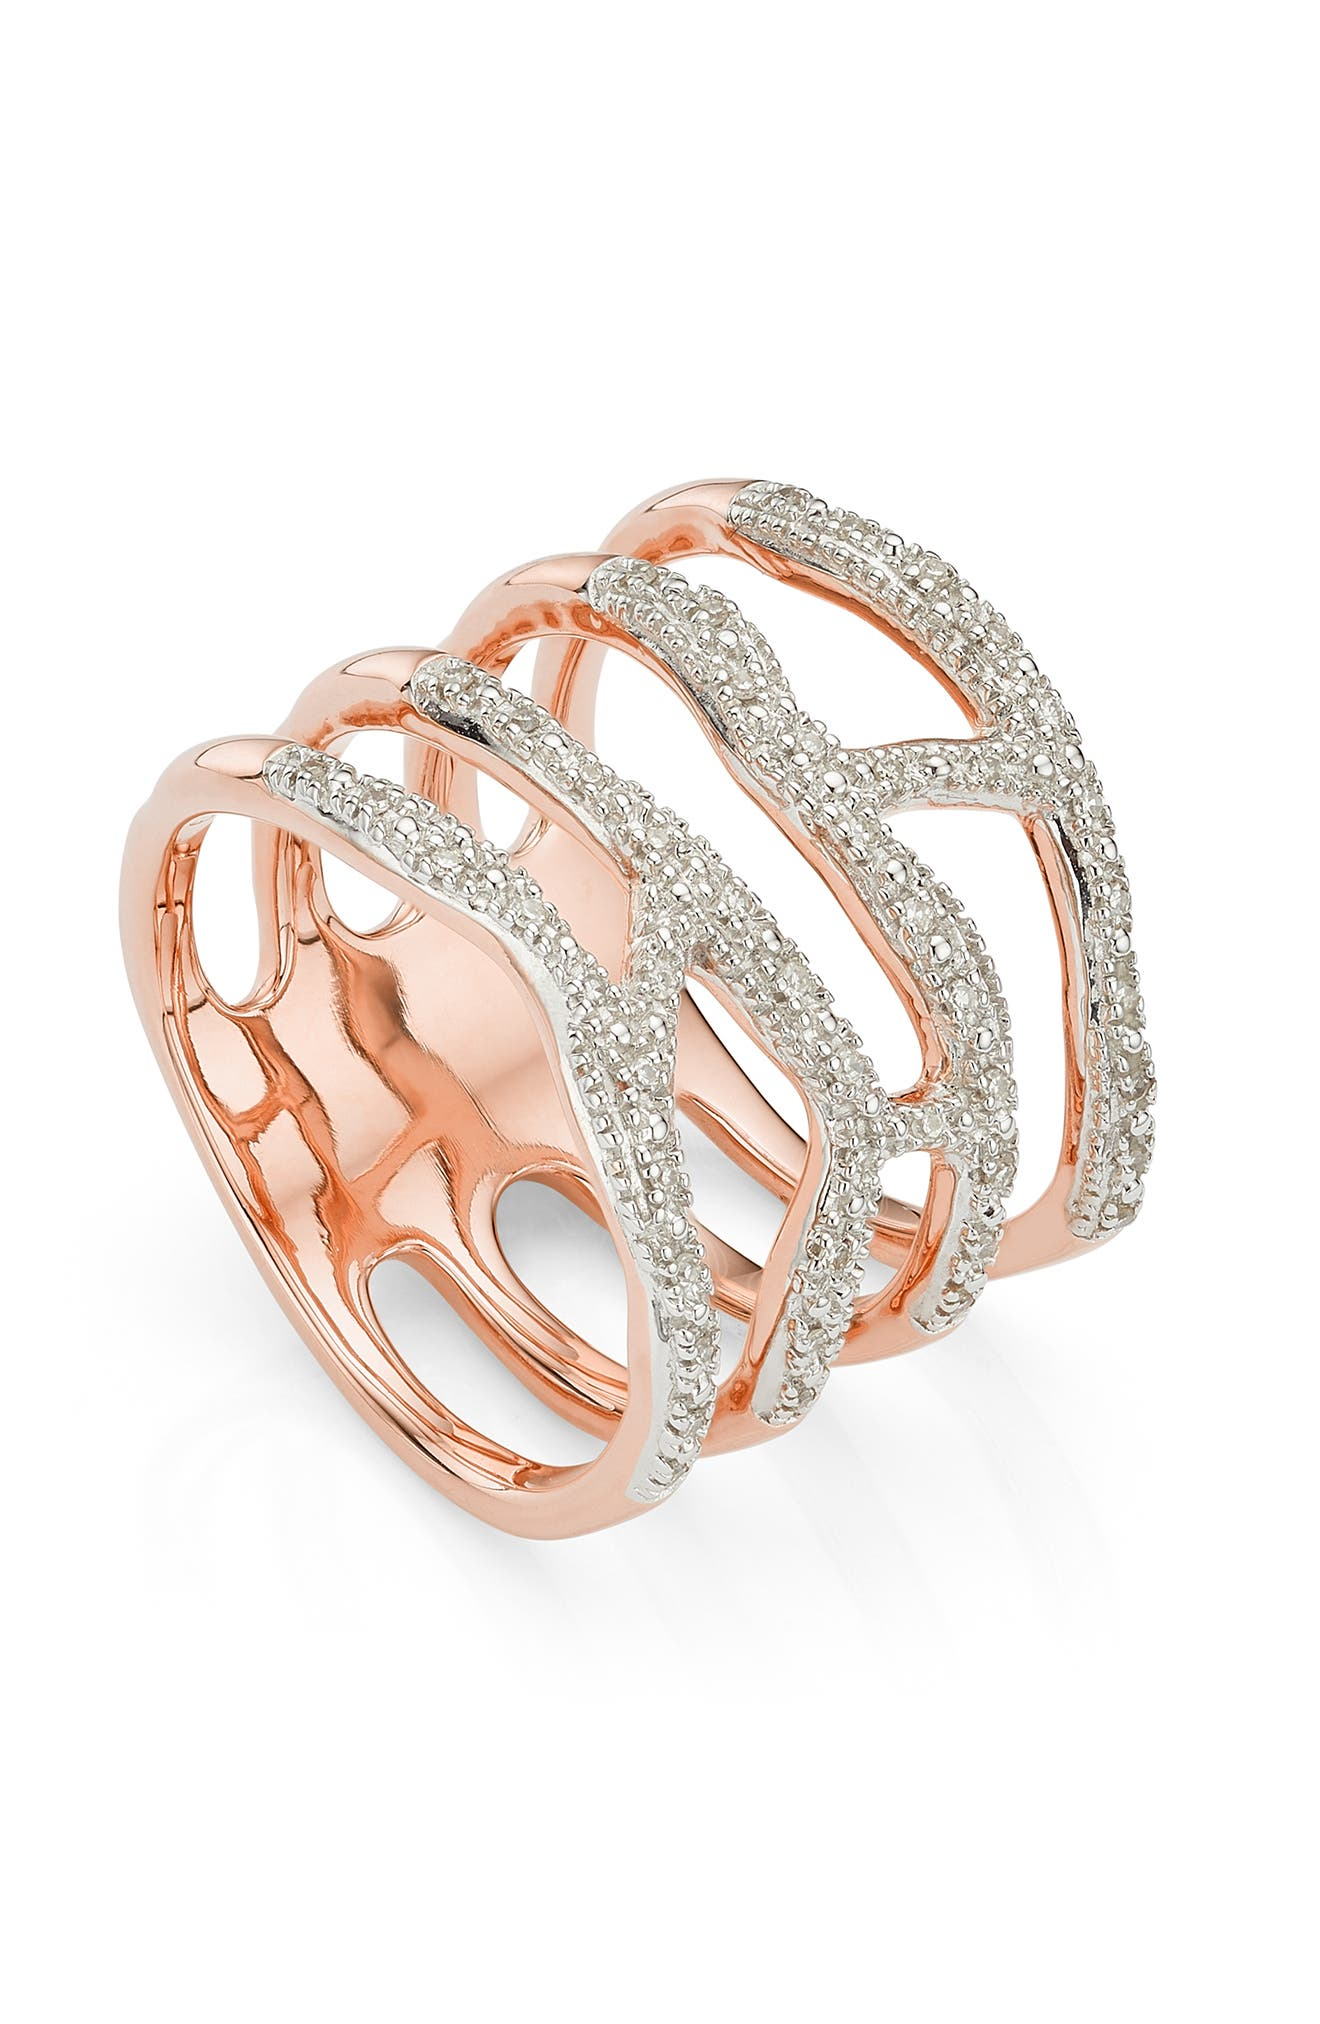 Riva Waterfall Diamond Cocktail Ring,                             Alternate thumbnail 2, color,                             ROSE GOLD/ DIAMOND